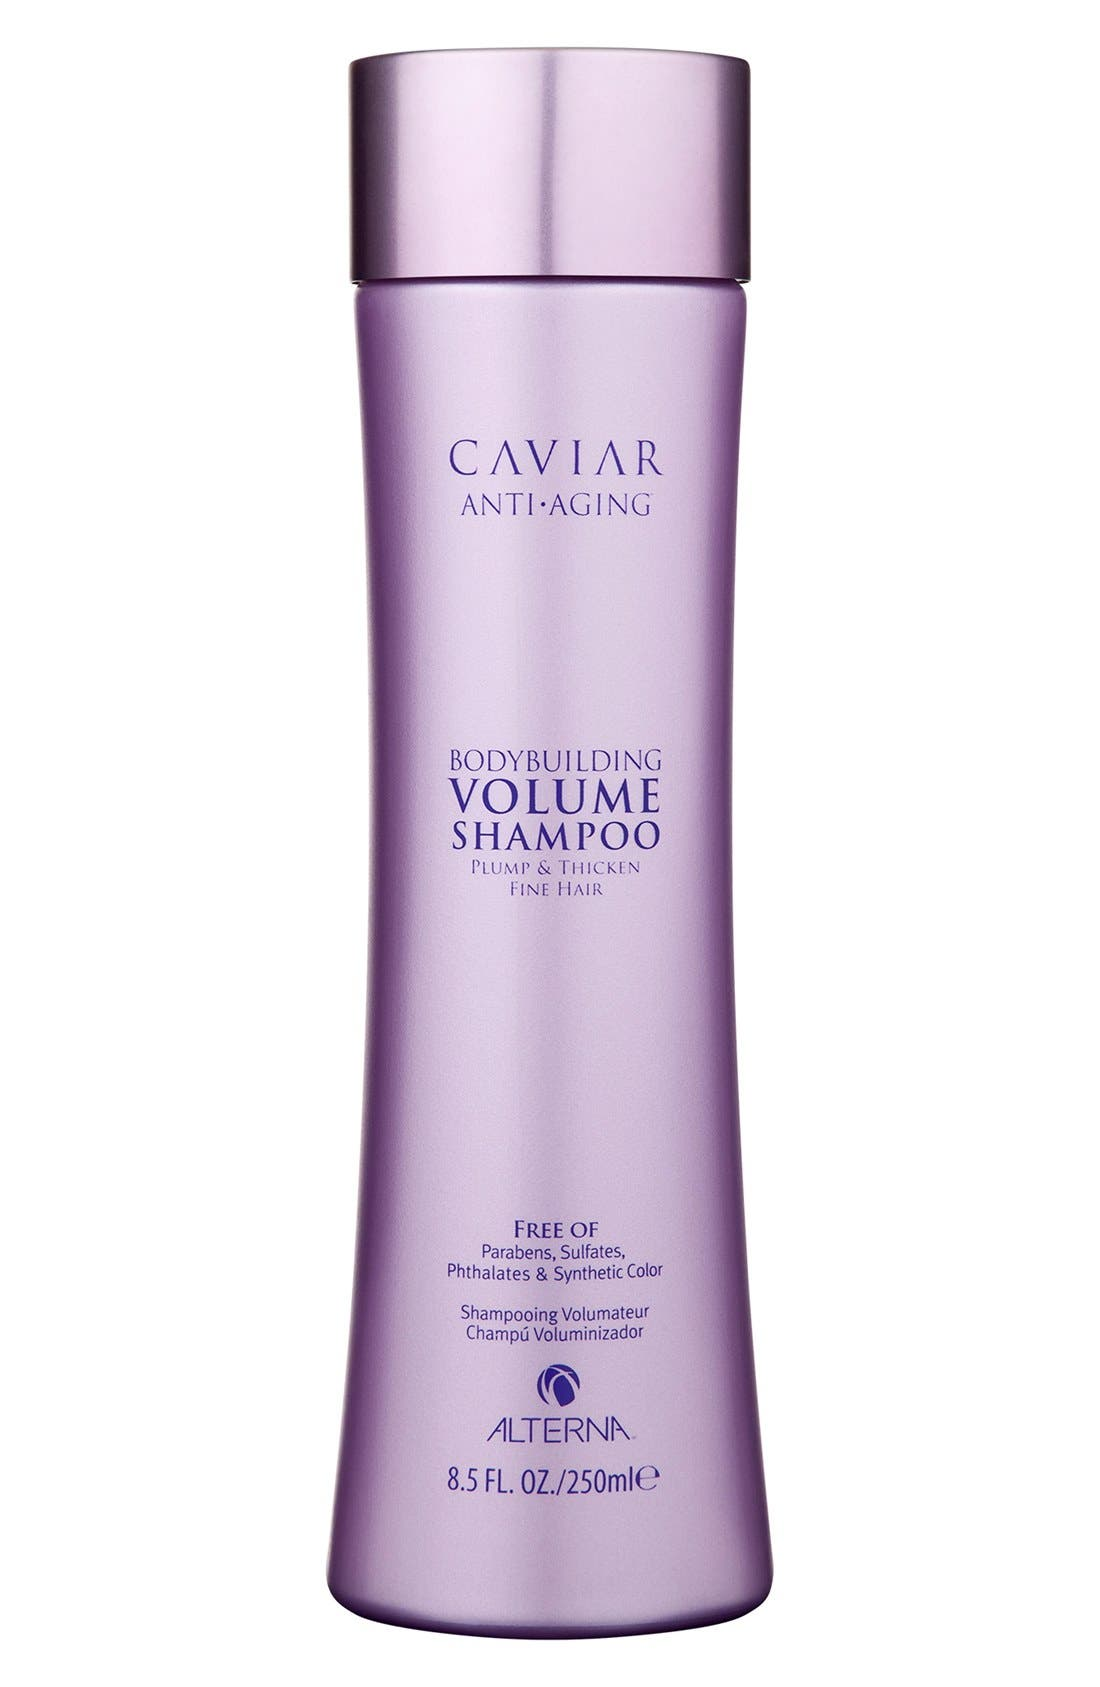 ALTERNA® Caviar Anti-Aging Bodybuilding Volume Shampoo